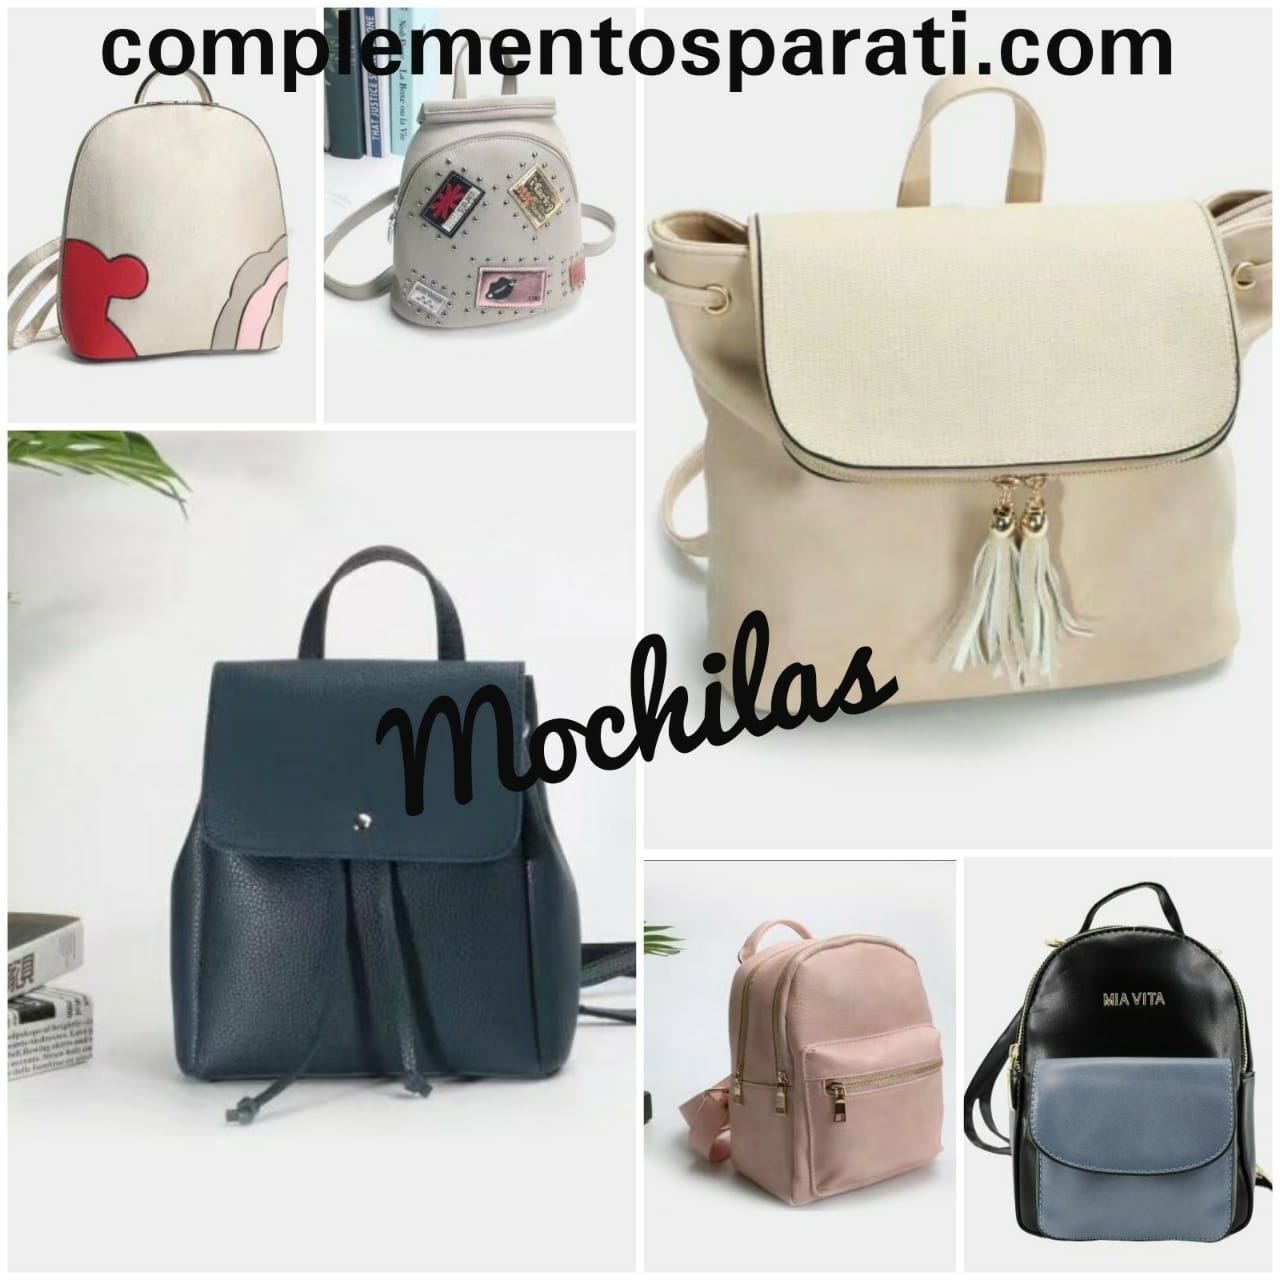 Mochilas al por mayor, Spain wholsale Back pack